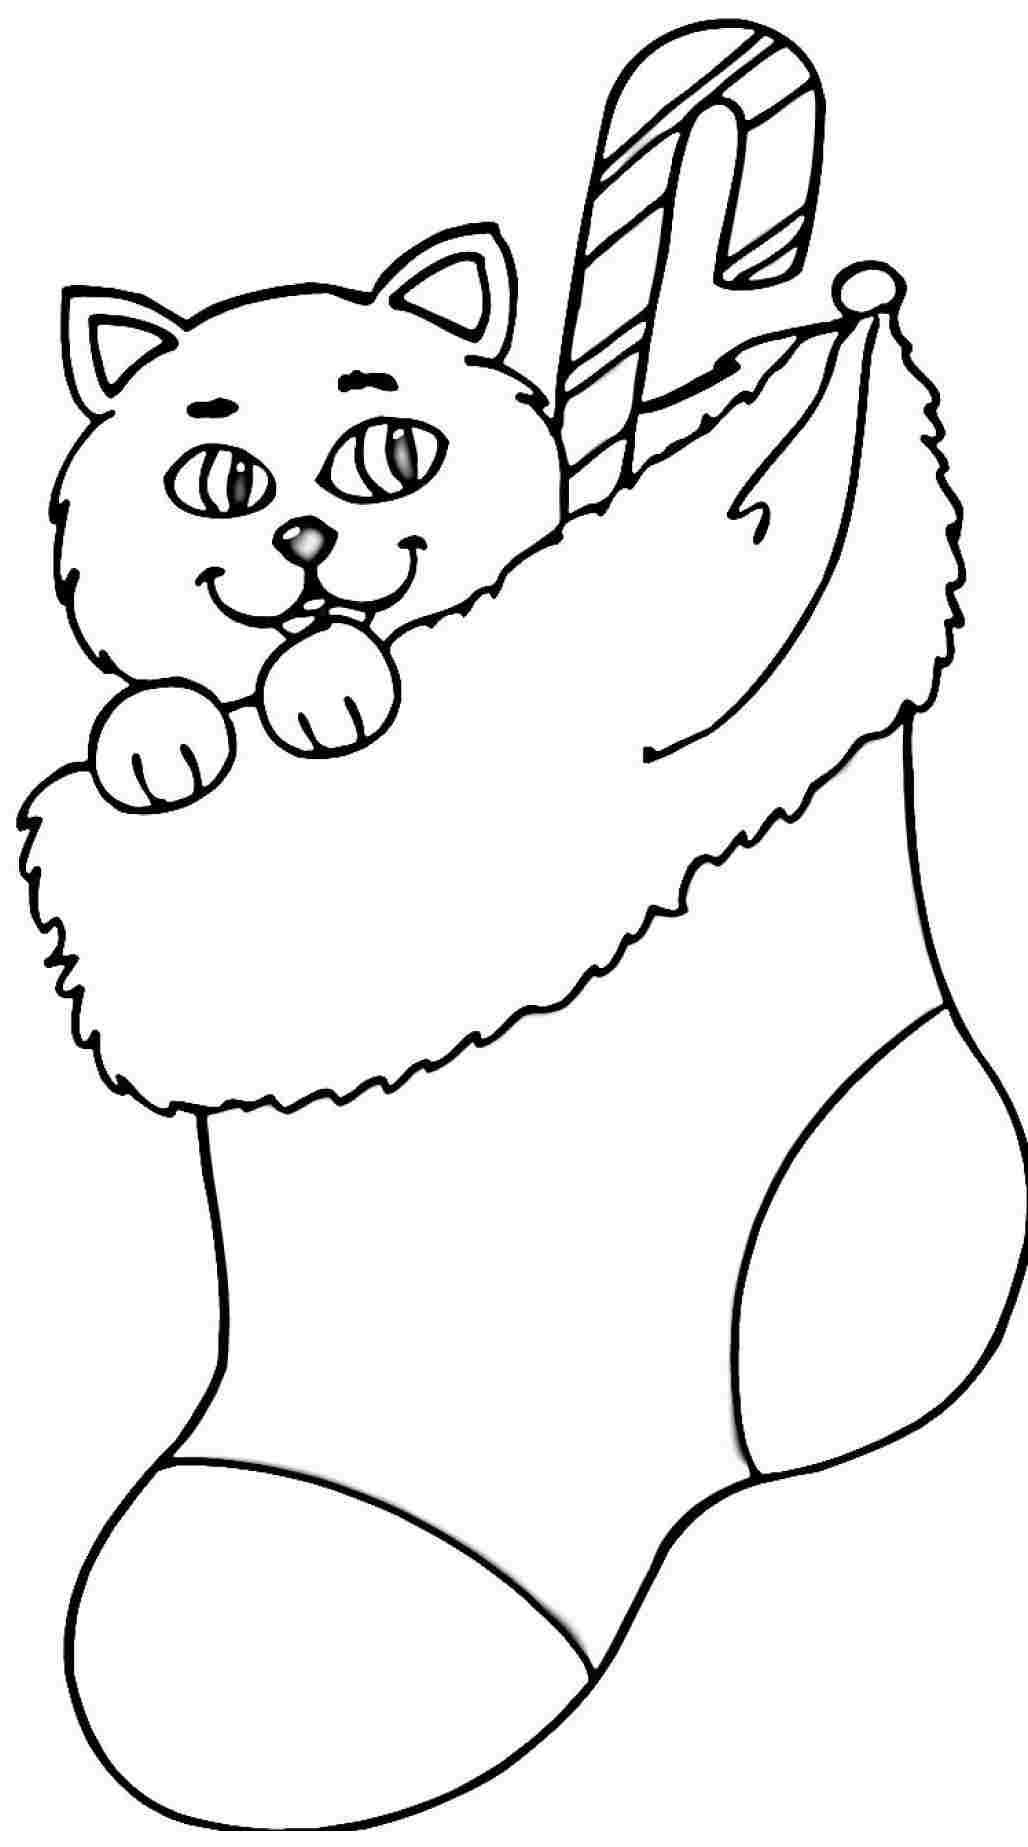 stocking free coloring pages - photo#30